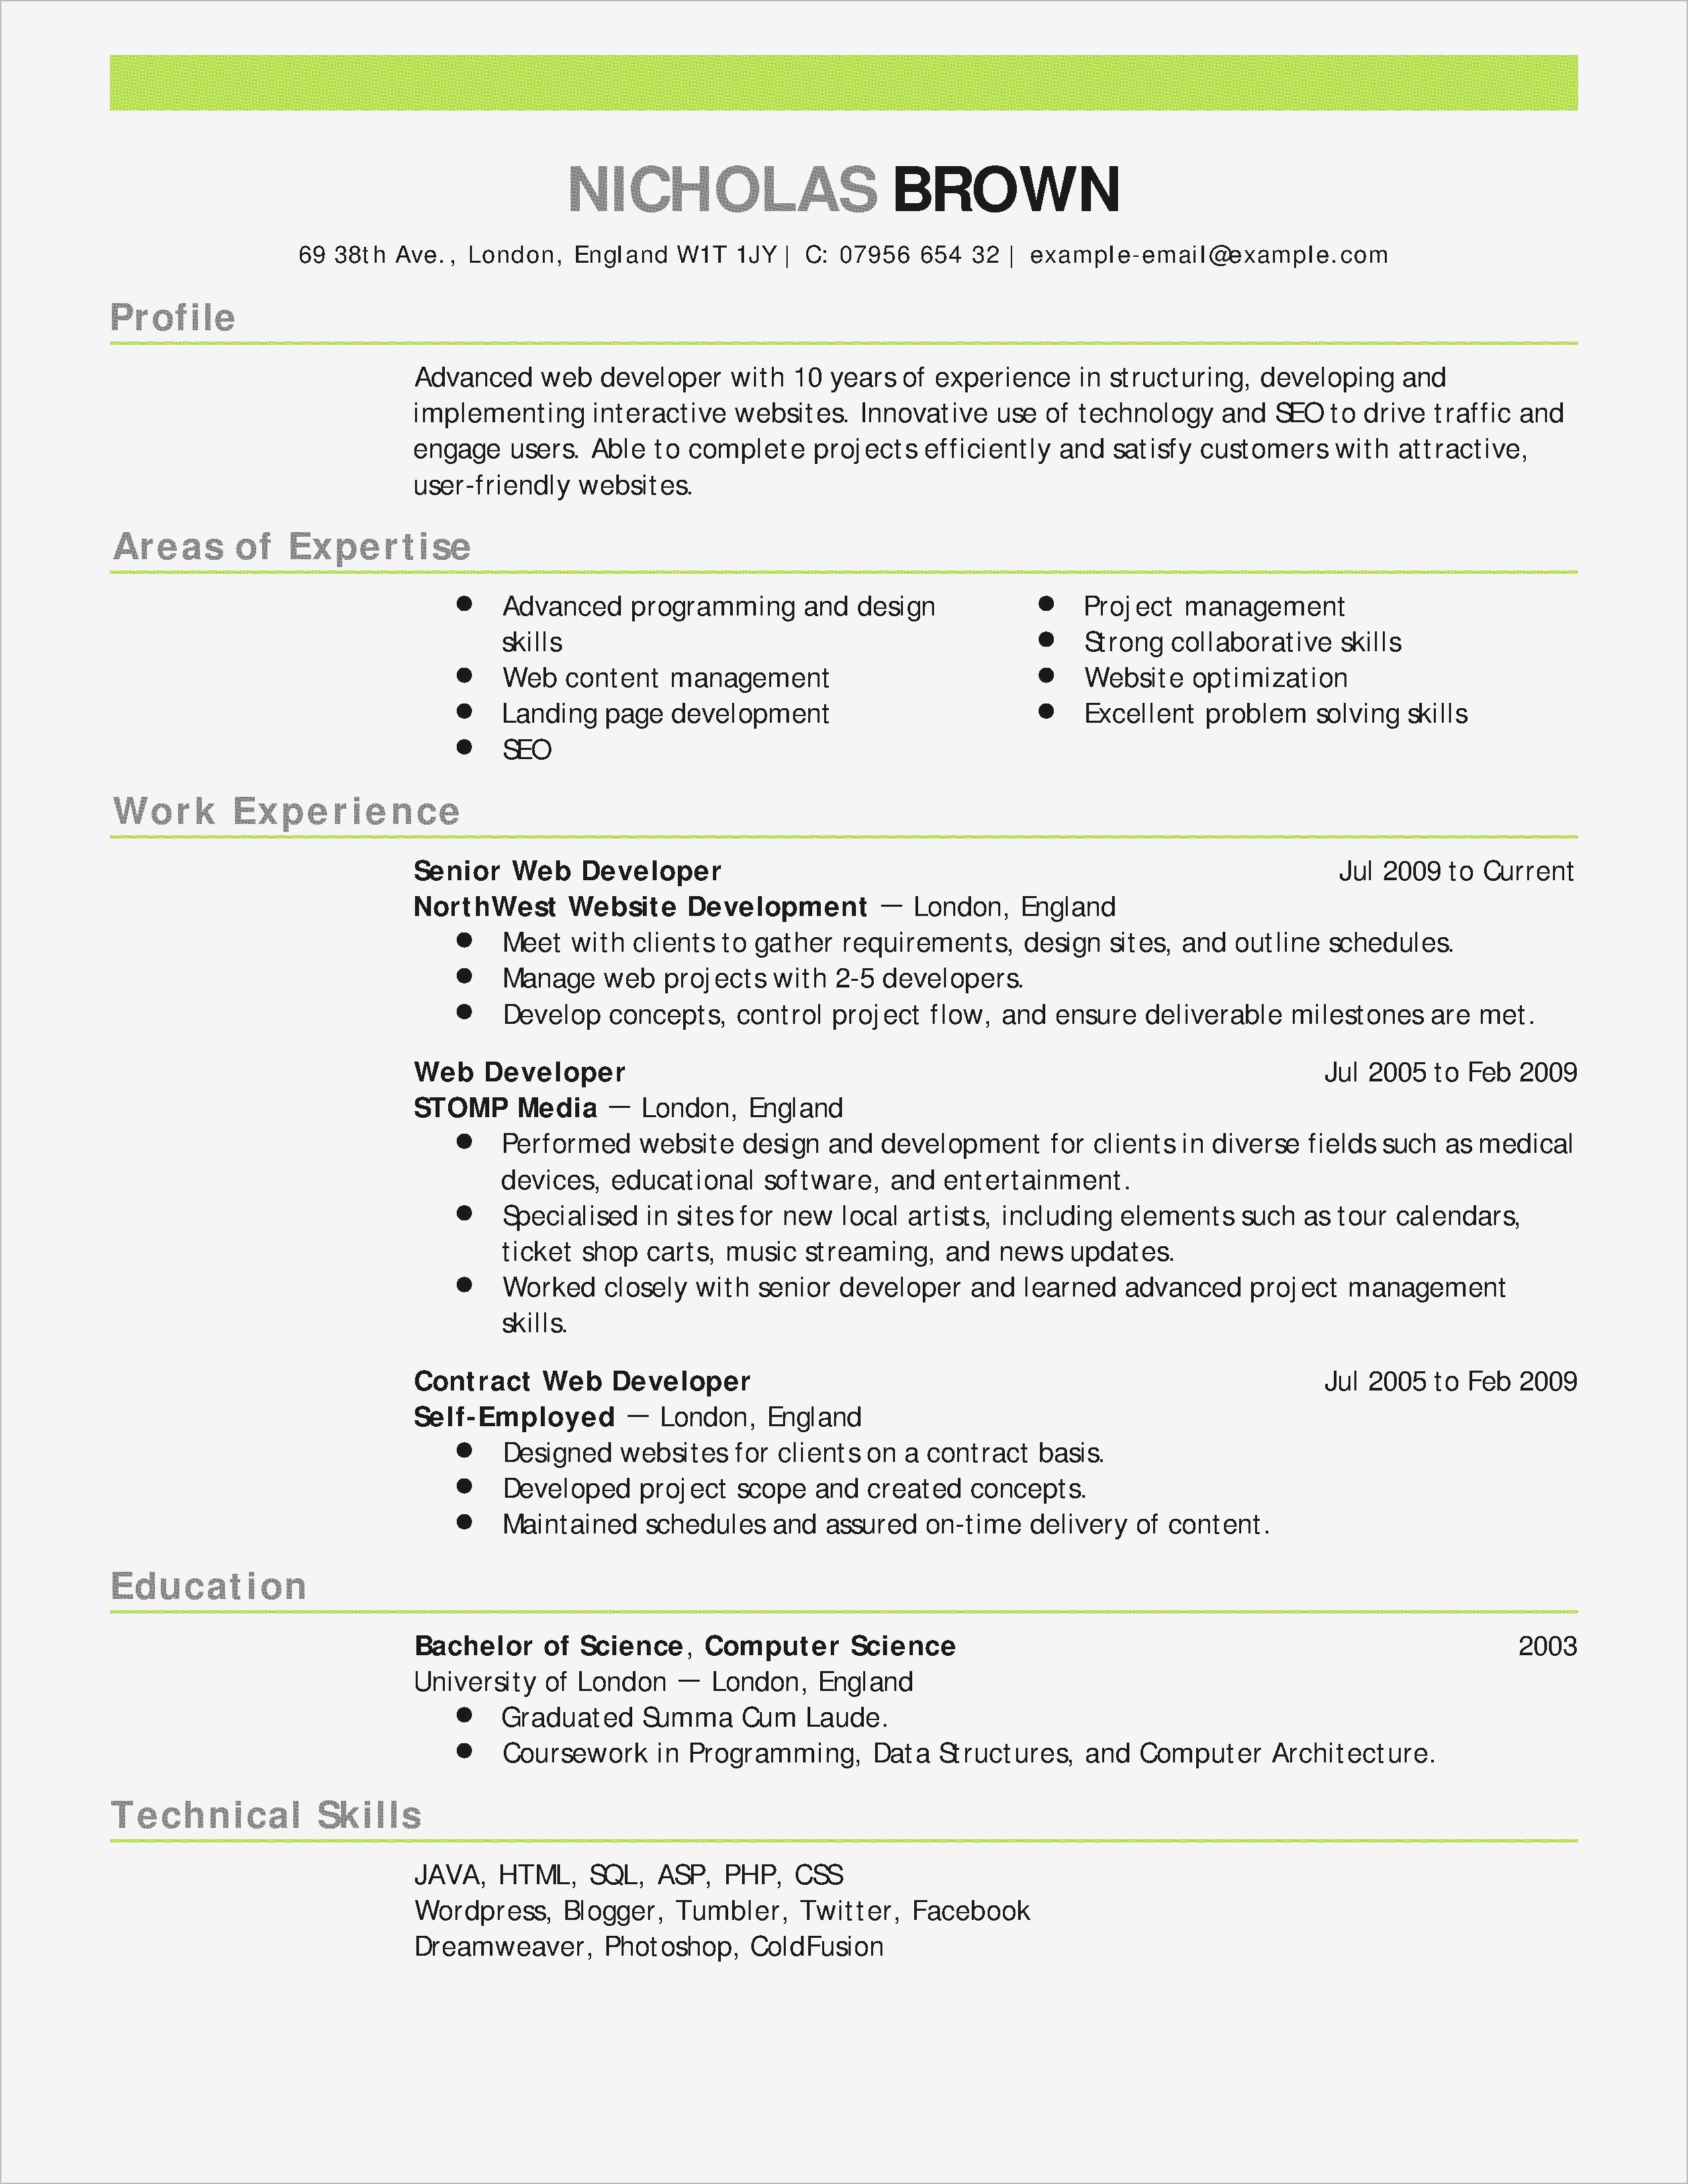 Letter Of Agreement Template Free - Maintenance Experience Resume Reference Elegant Cover Letter Writing